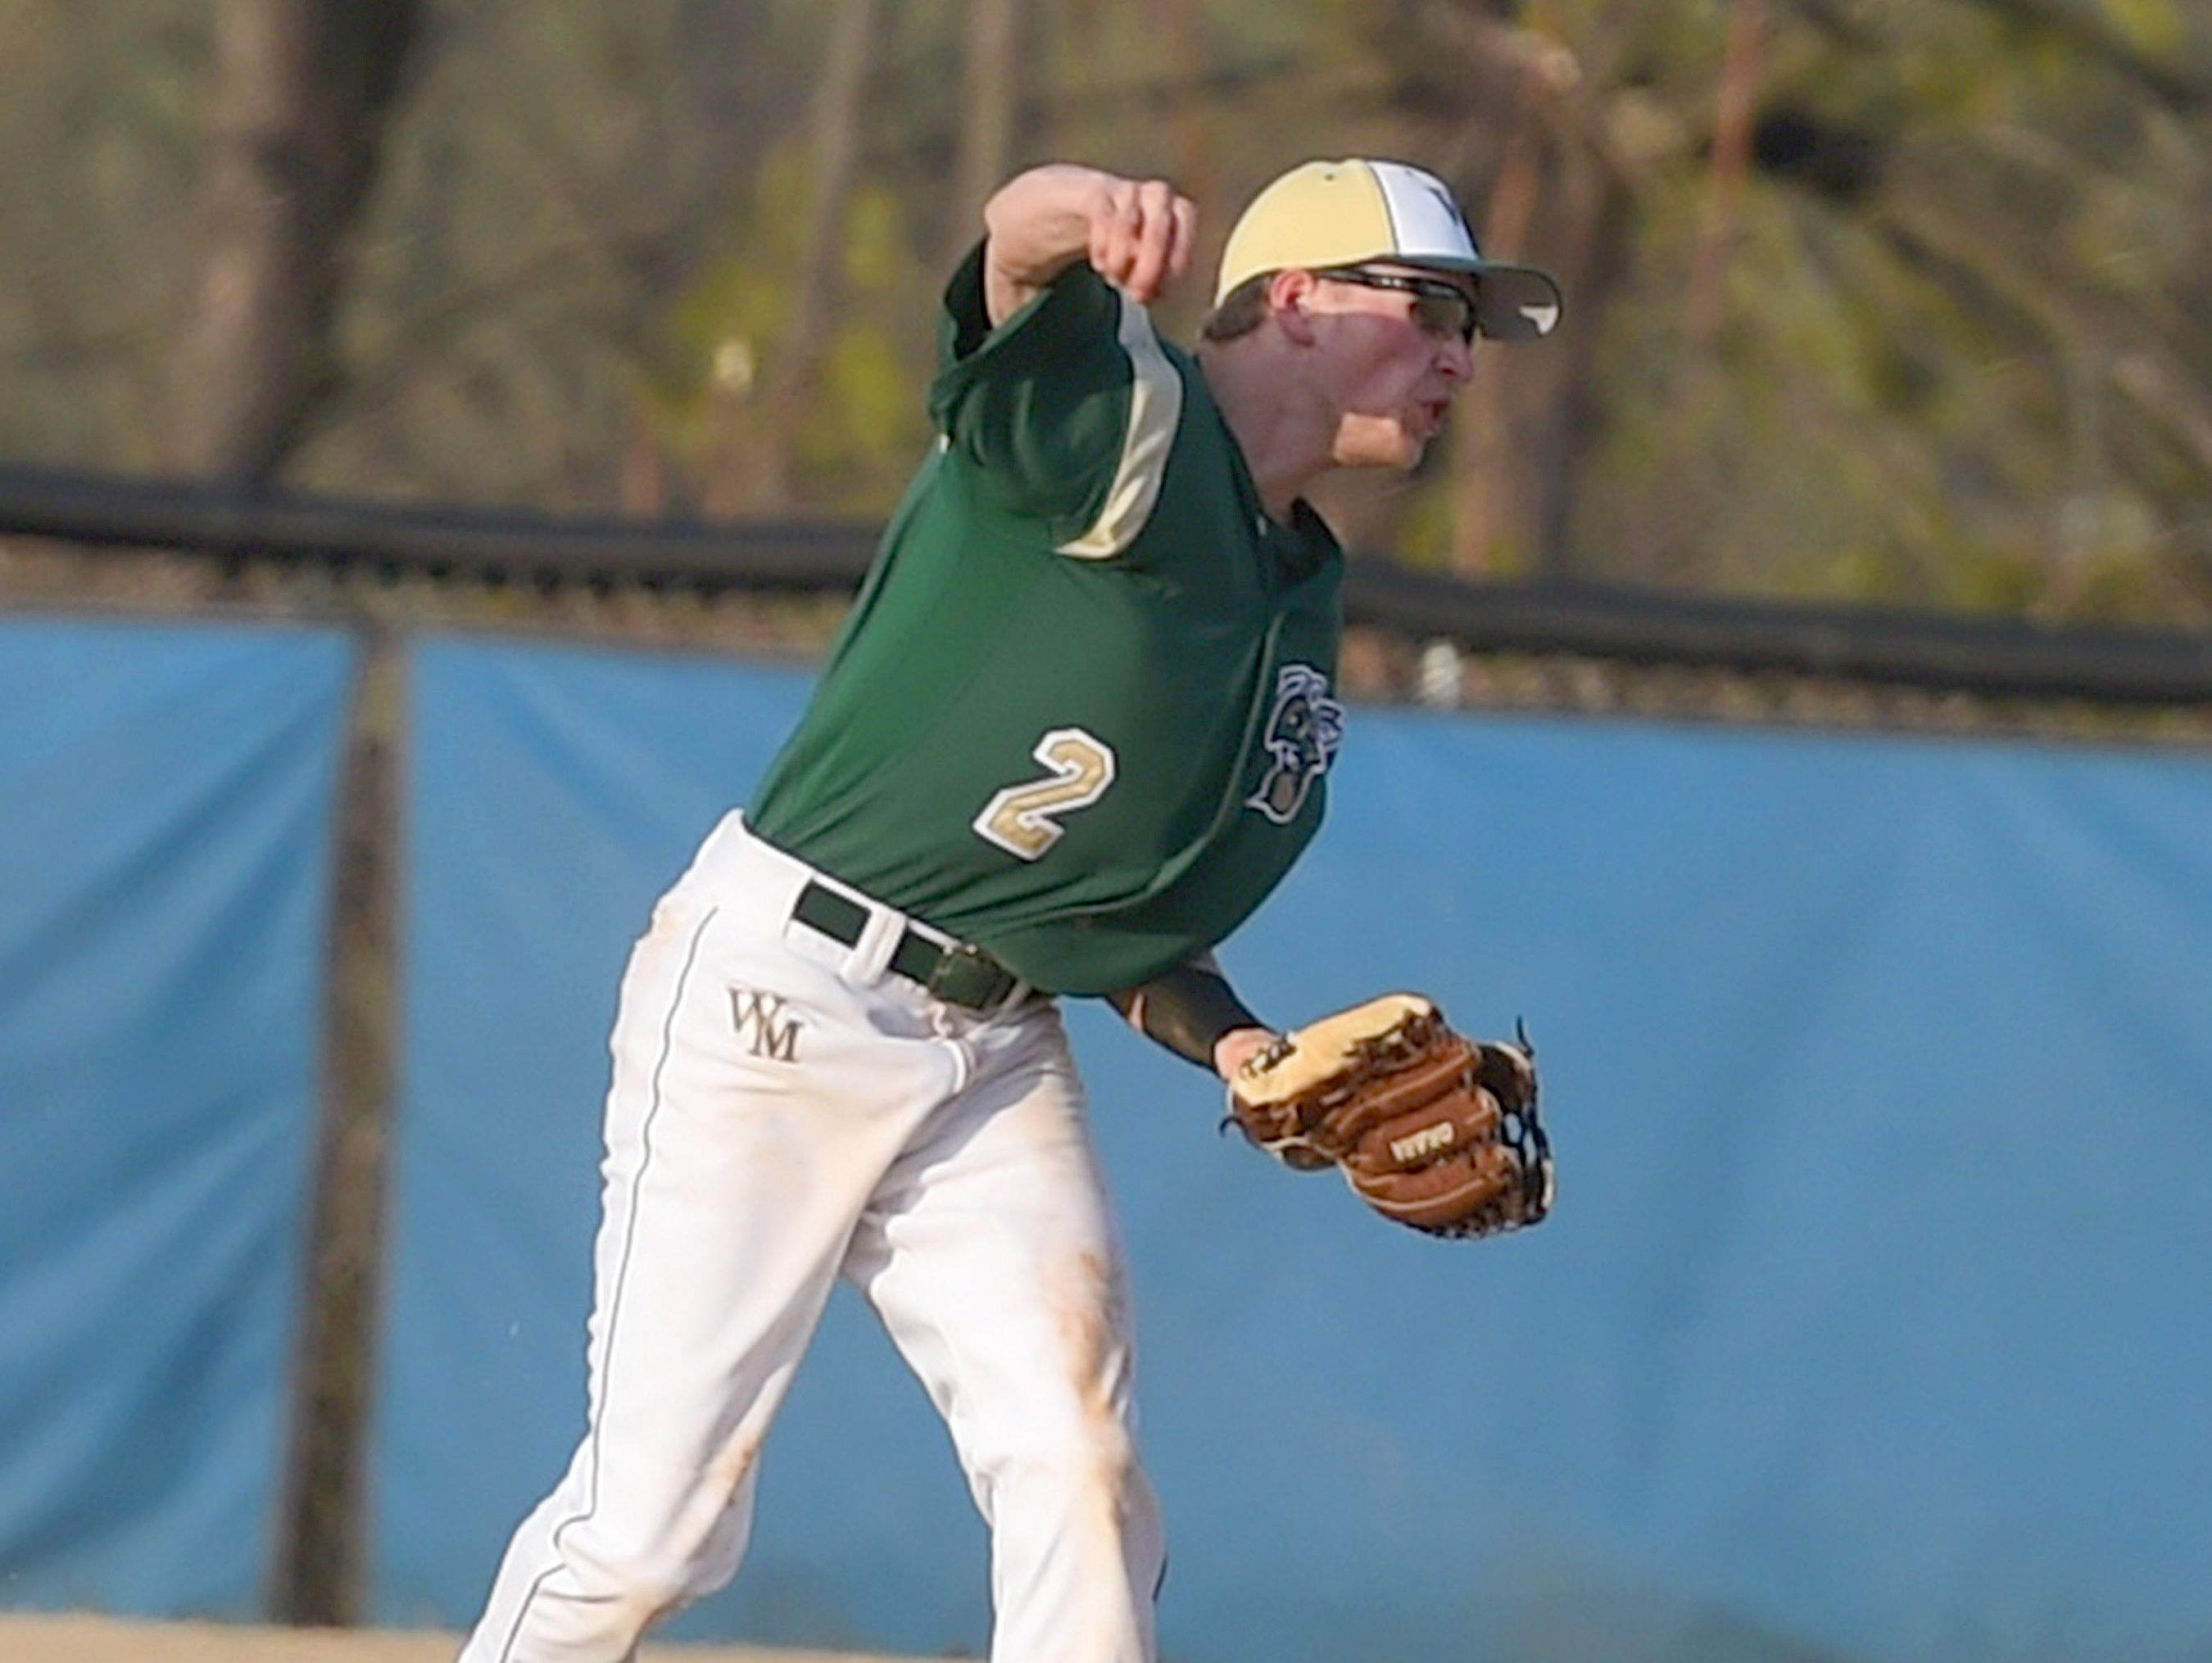 Wilson Memorial's Ty Kauffman, an All-Conference 36 center fielder last season, is back for the Green Hornets.